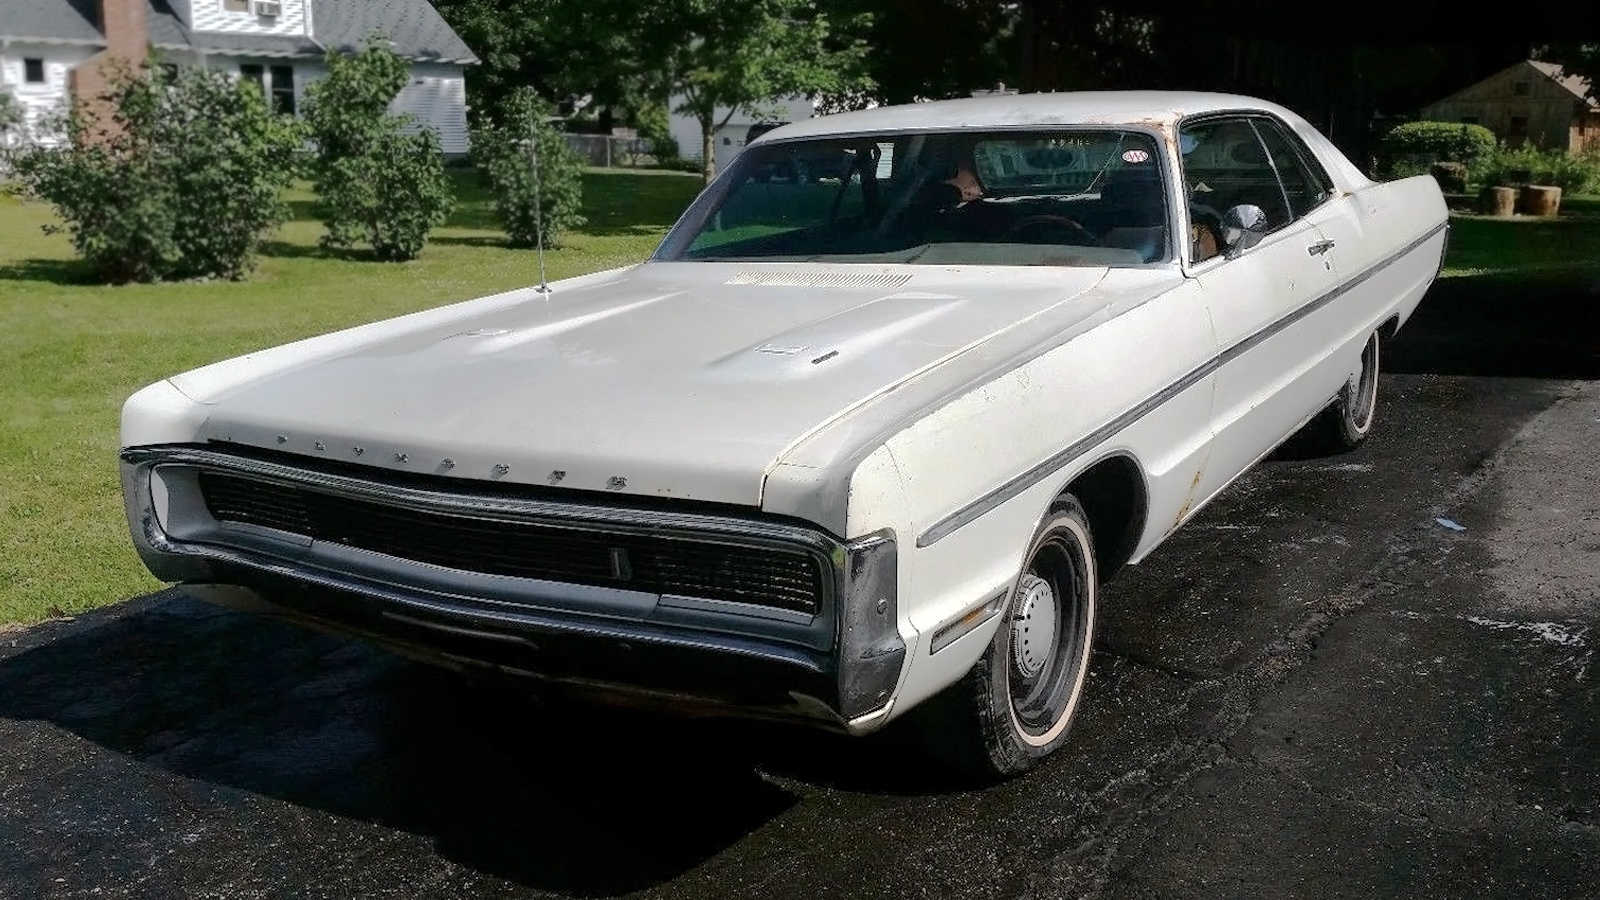 Project plymouth 1970 plymouth sport fury - 1970 plymouth fury gran coupe ...